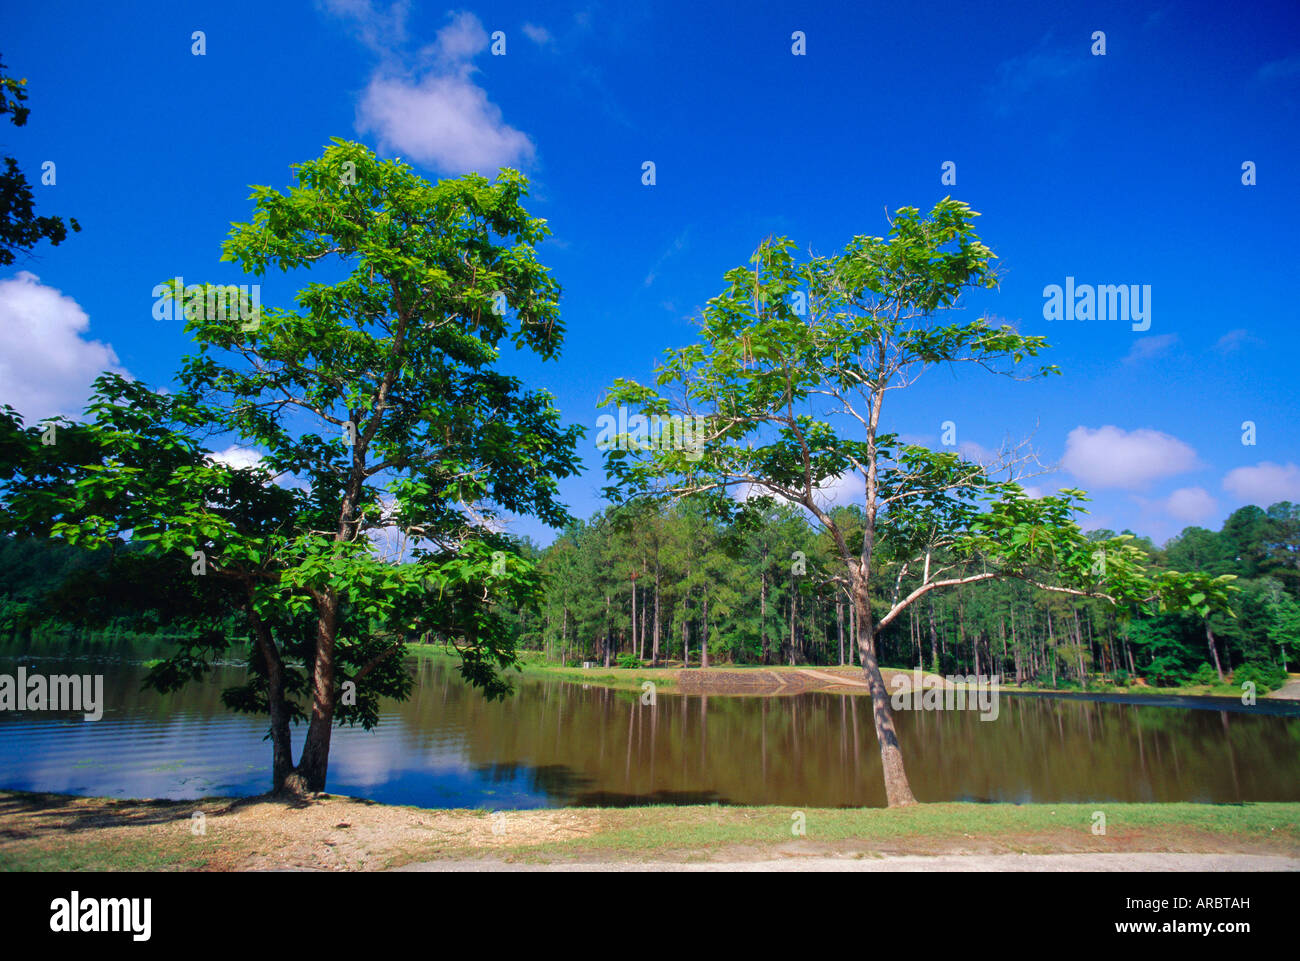 The Little River at Claude D Kelly State Park in Monroe County, southern Alabama, USA - Stock Image